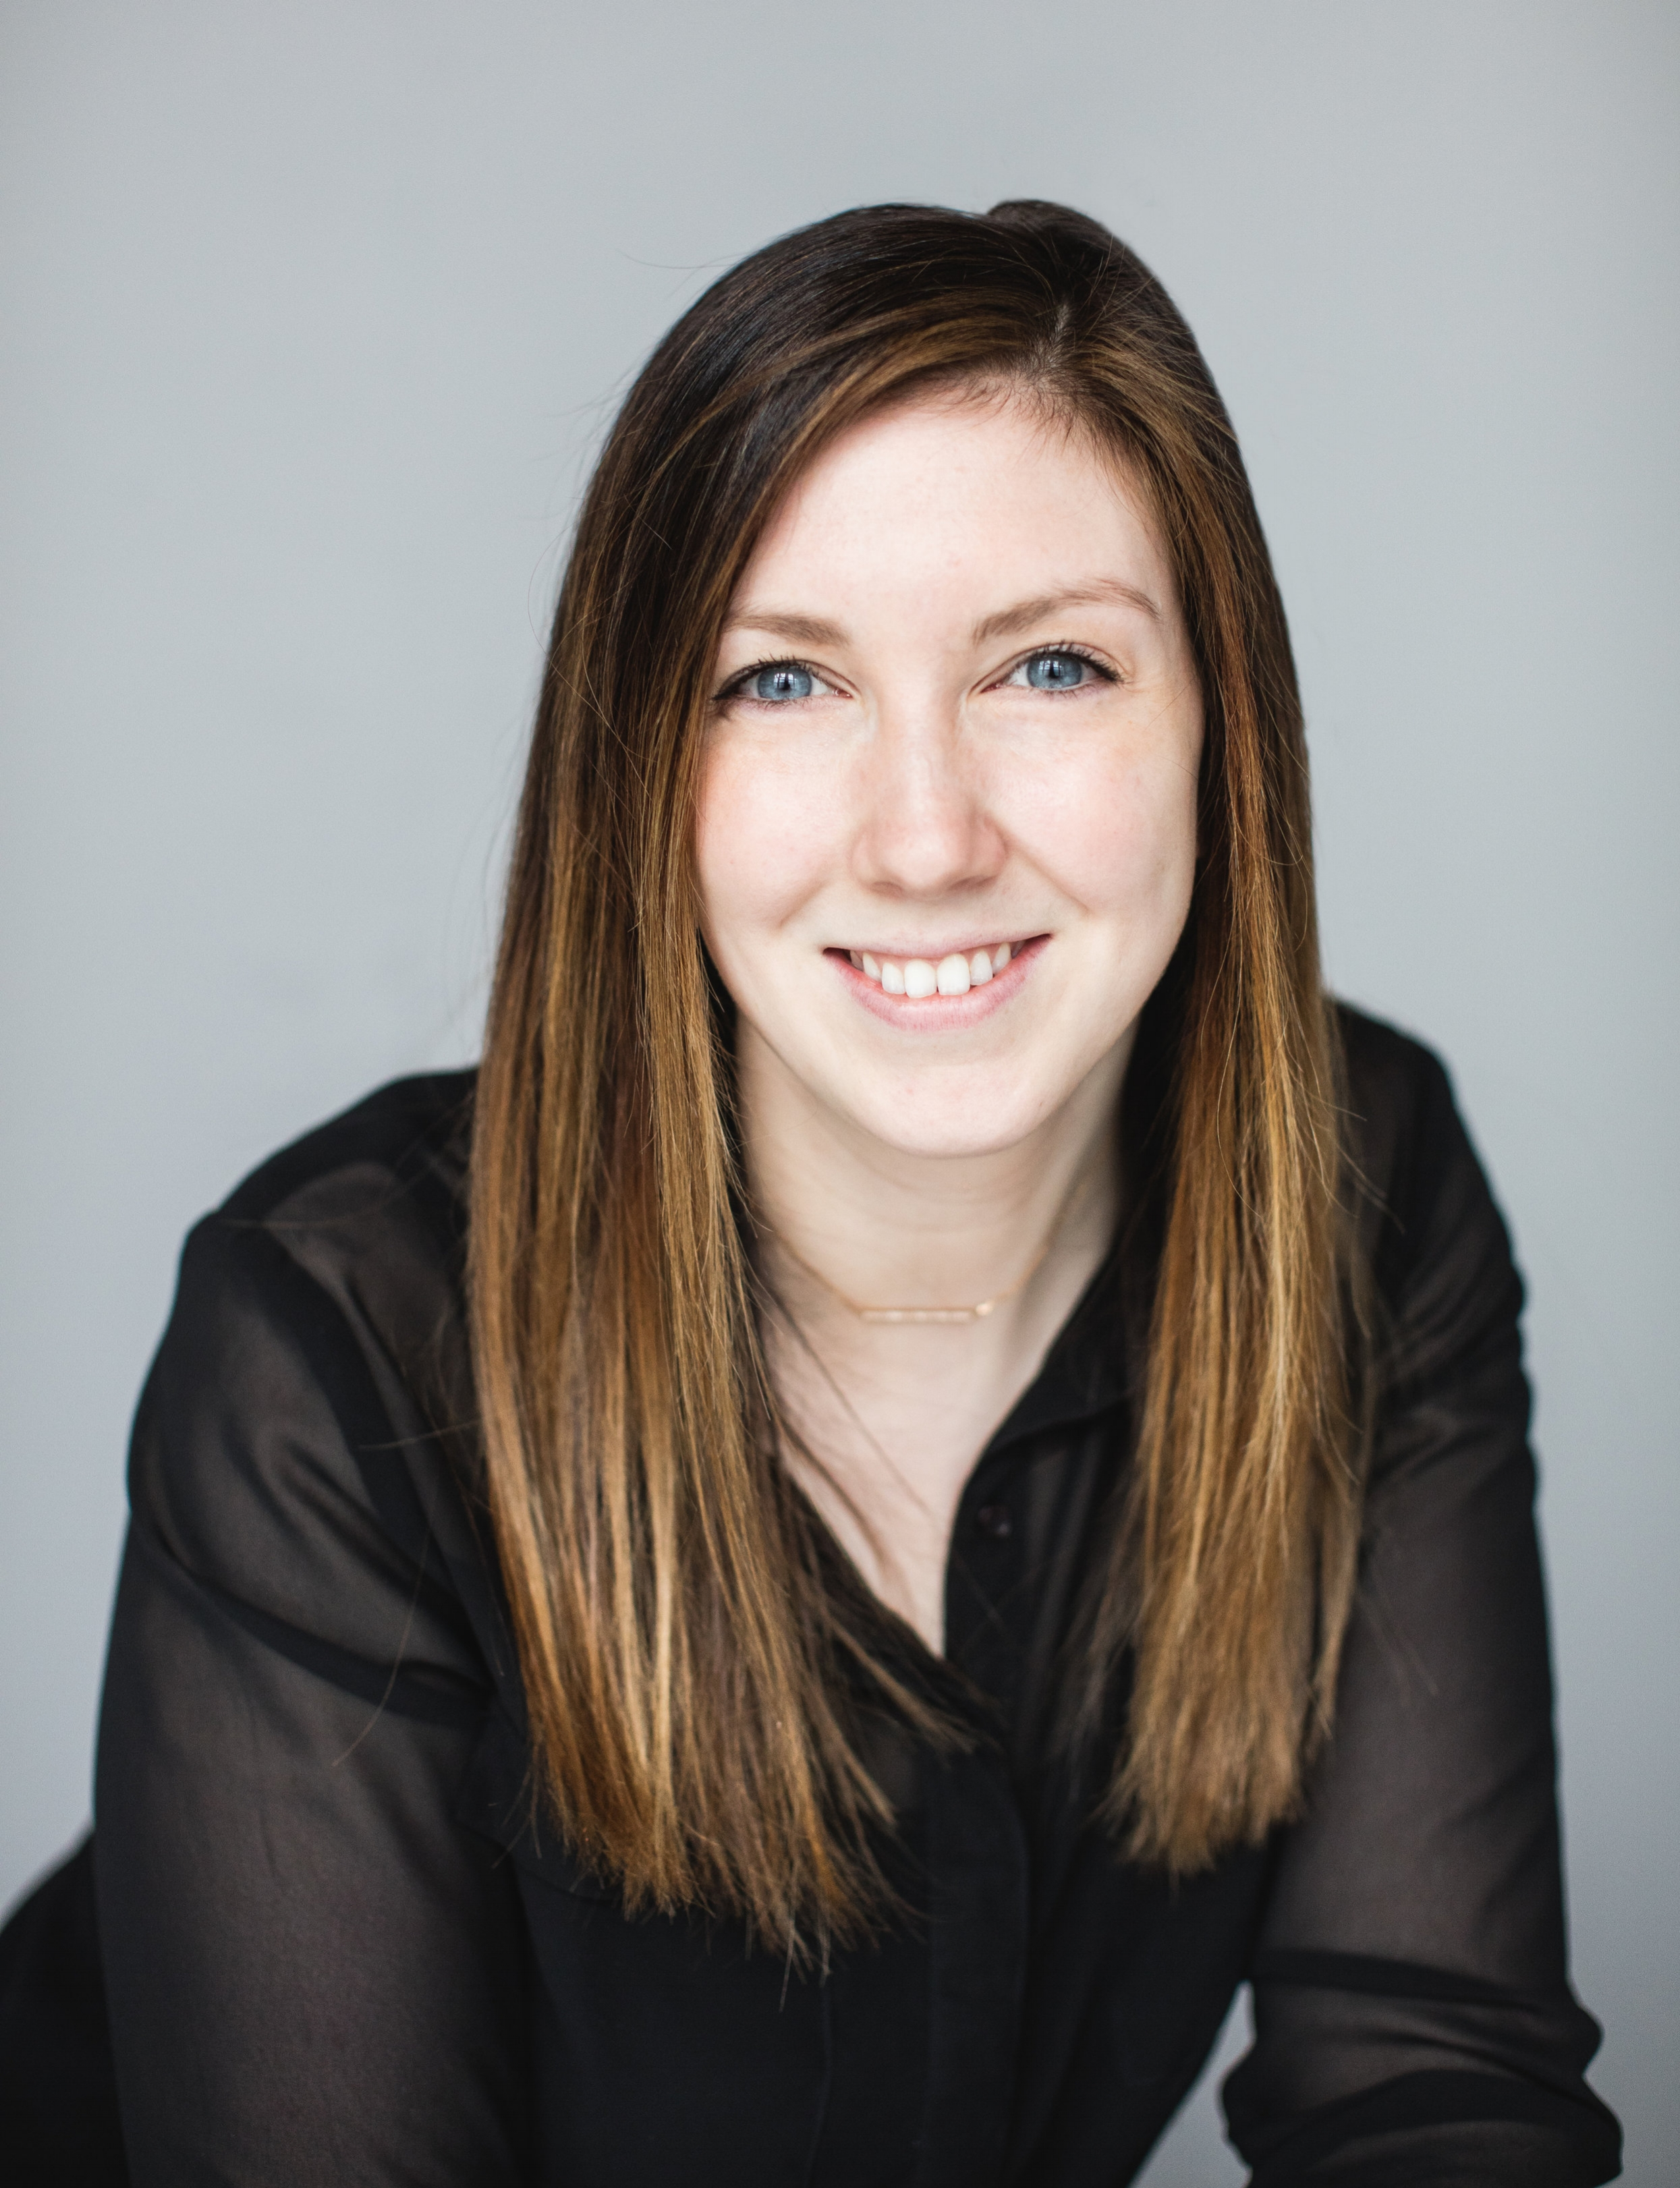 """""""I truly believe the education I received at Grammar made me a better person."""" - Katie McGarrigle'08"""